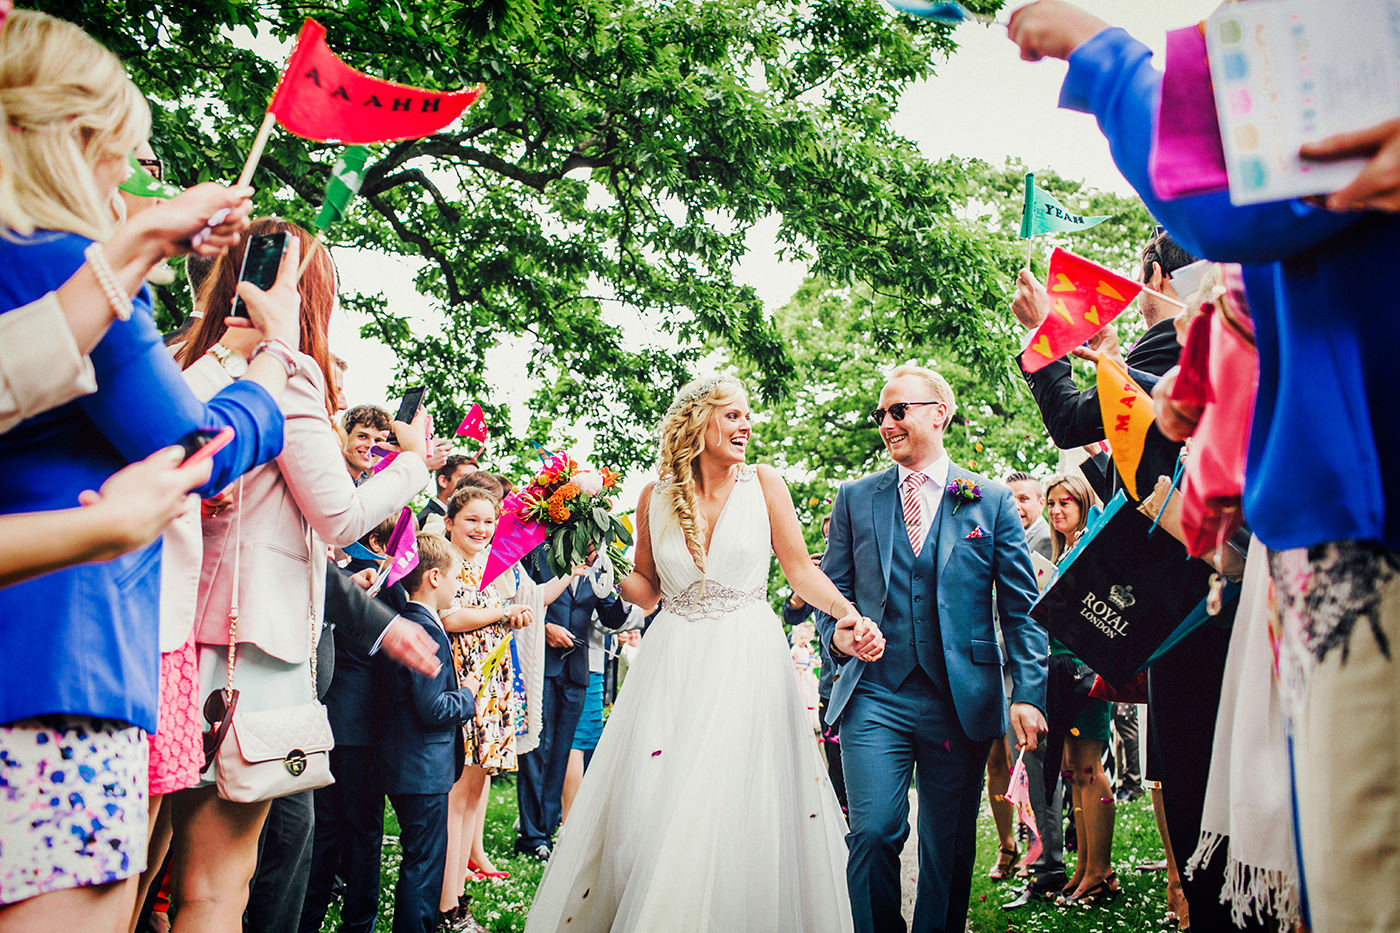 colourful wedding photo from Cornwall in England